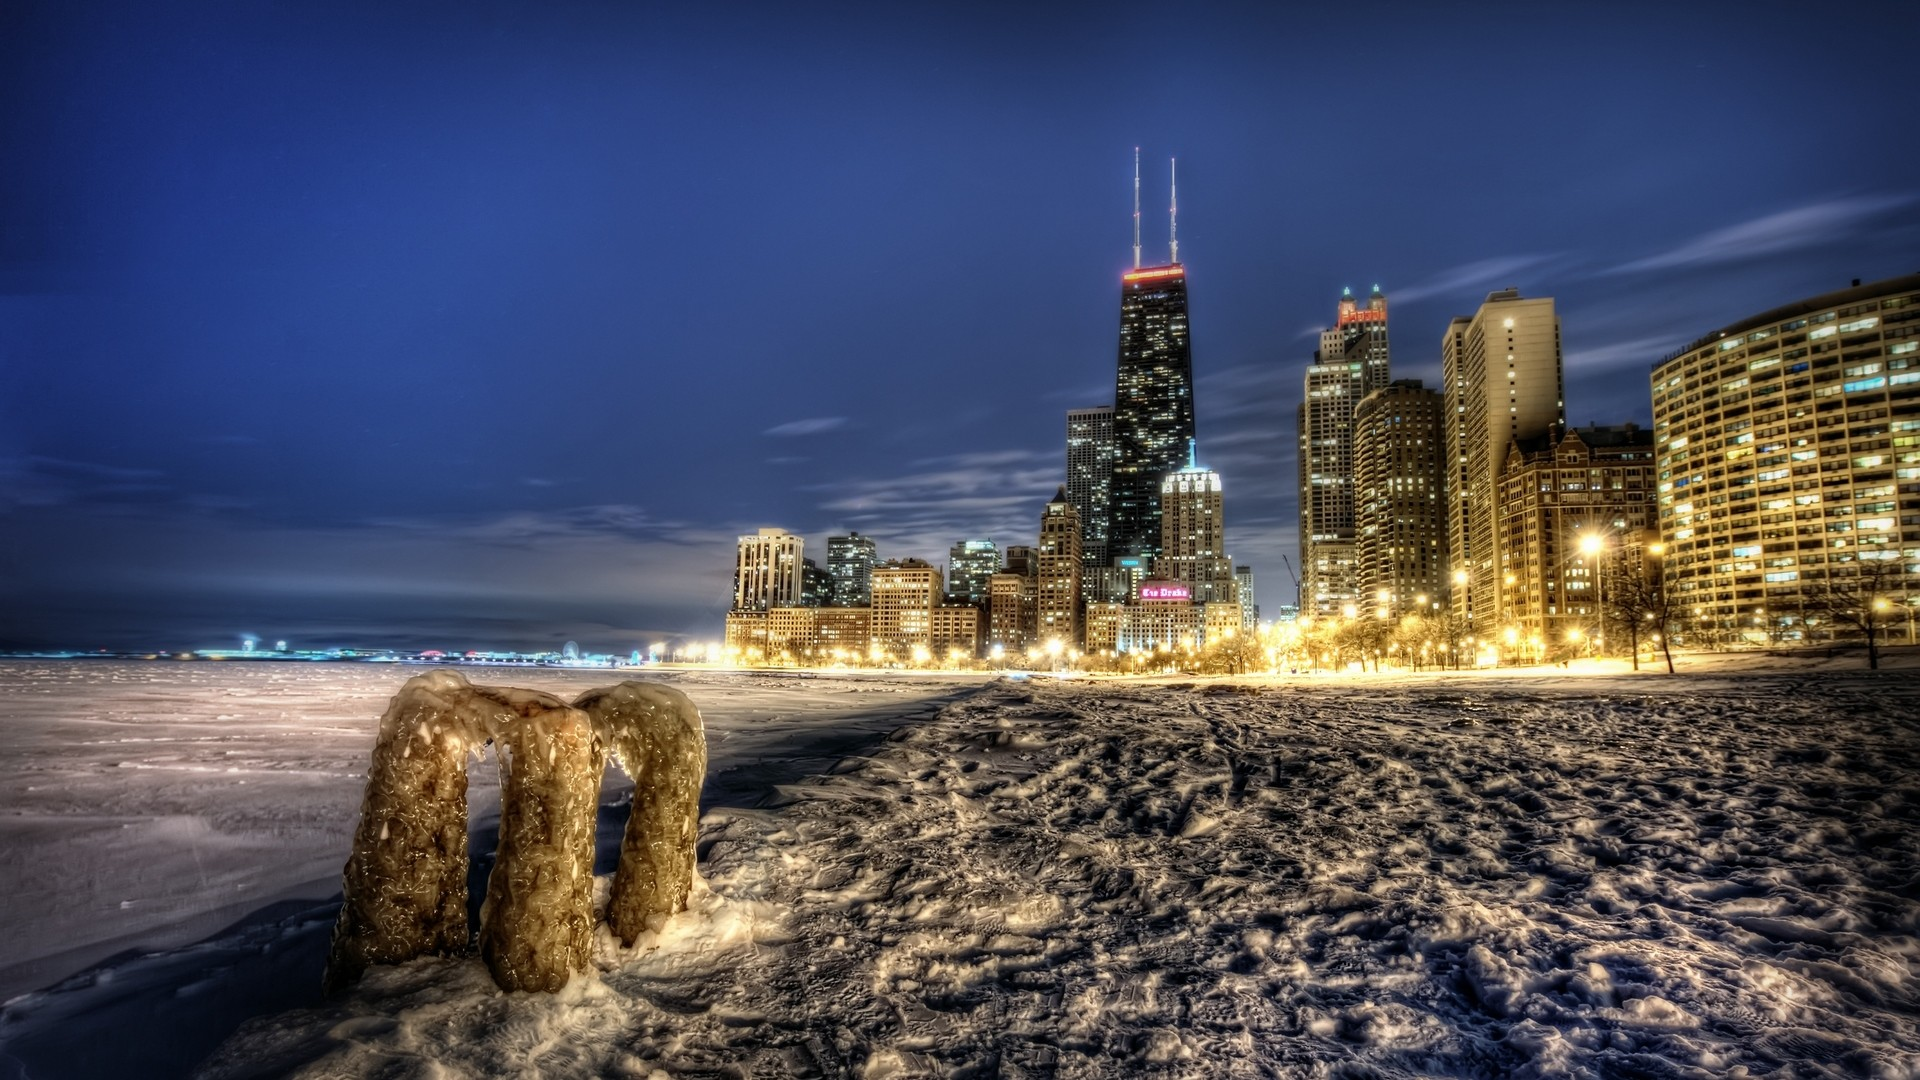 1920x1080 HD Wall Paper 1920X1080 Chicago | download this wallpaper use for facebook  cover edit this wallpapers